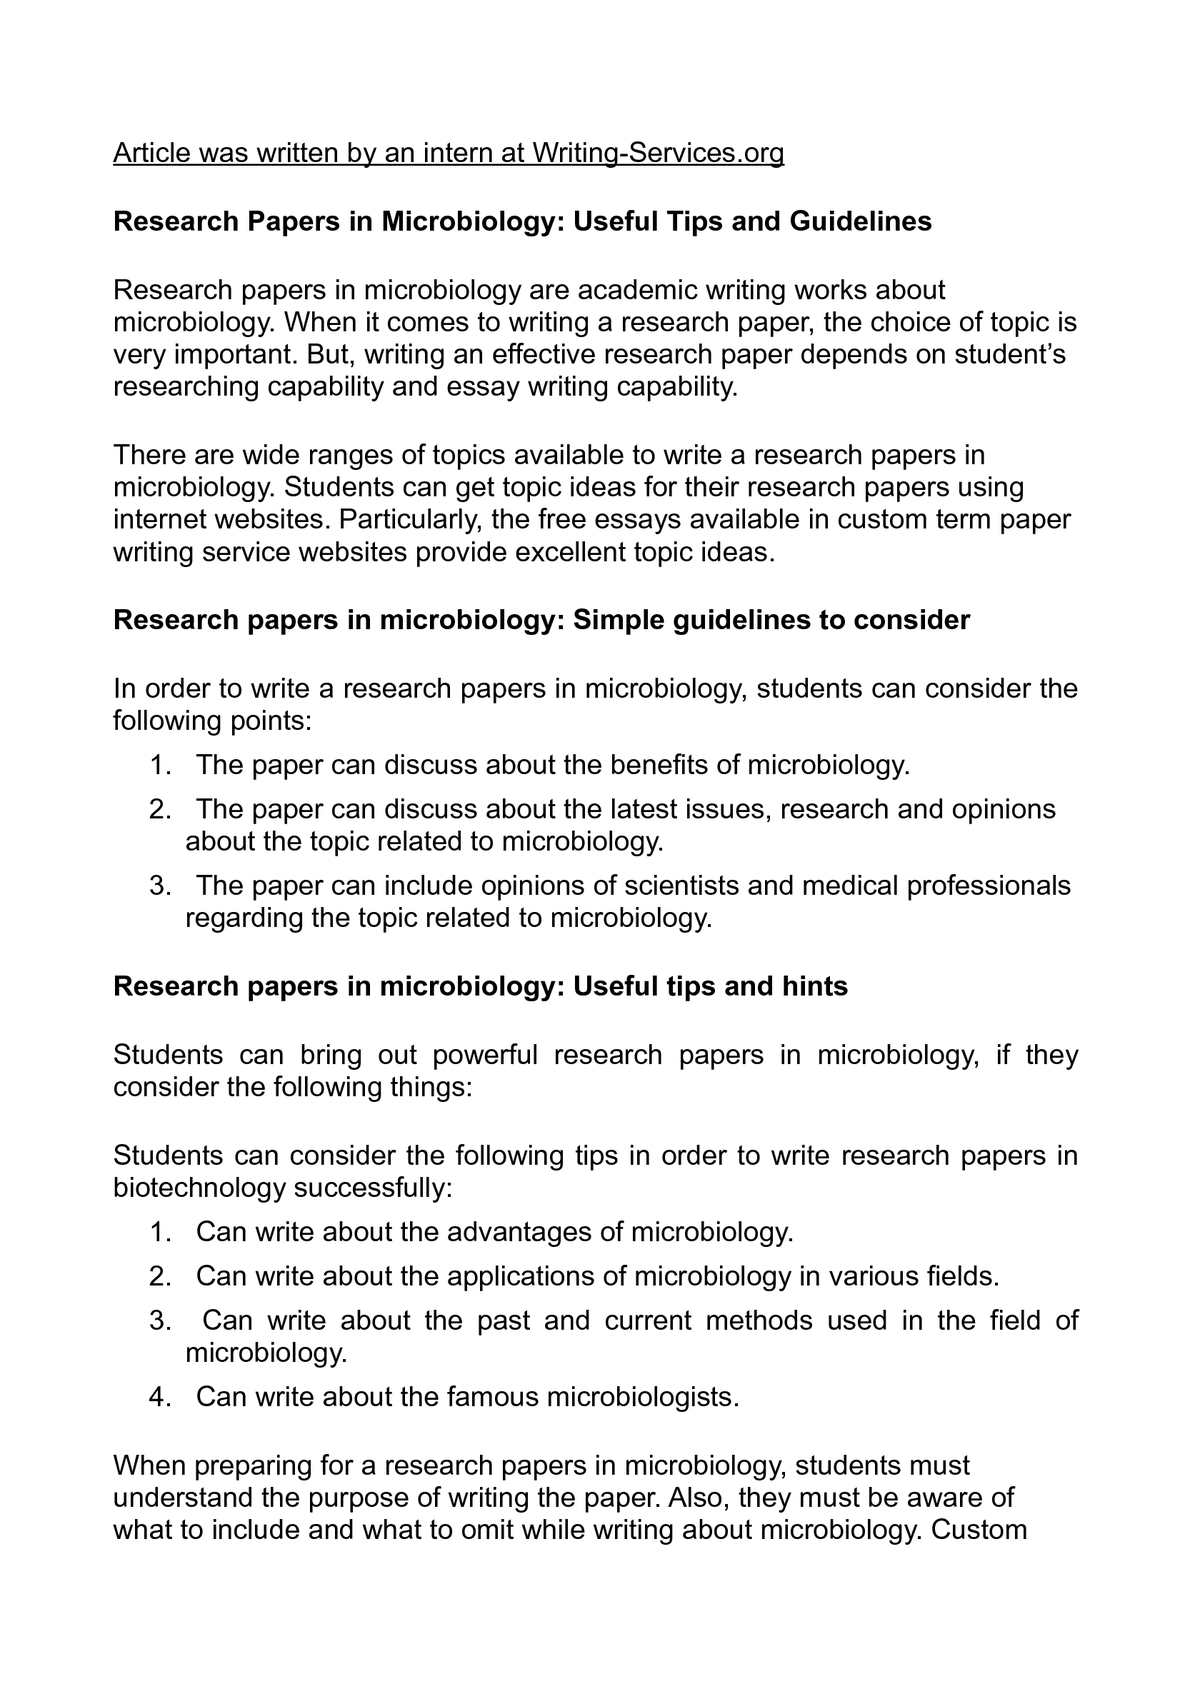 007 Research Paper Tips For Papers Wondrous Effective Writing An Presentation Full